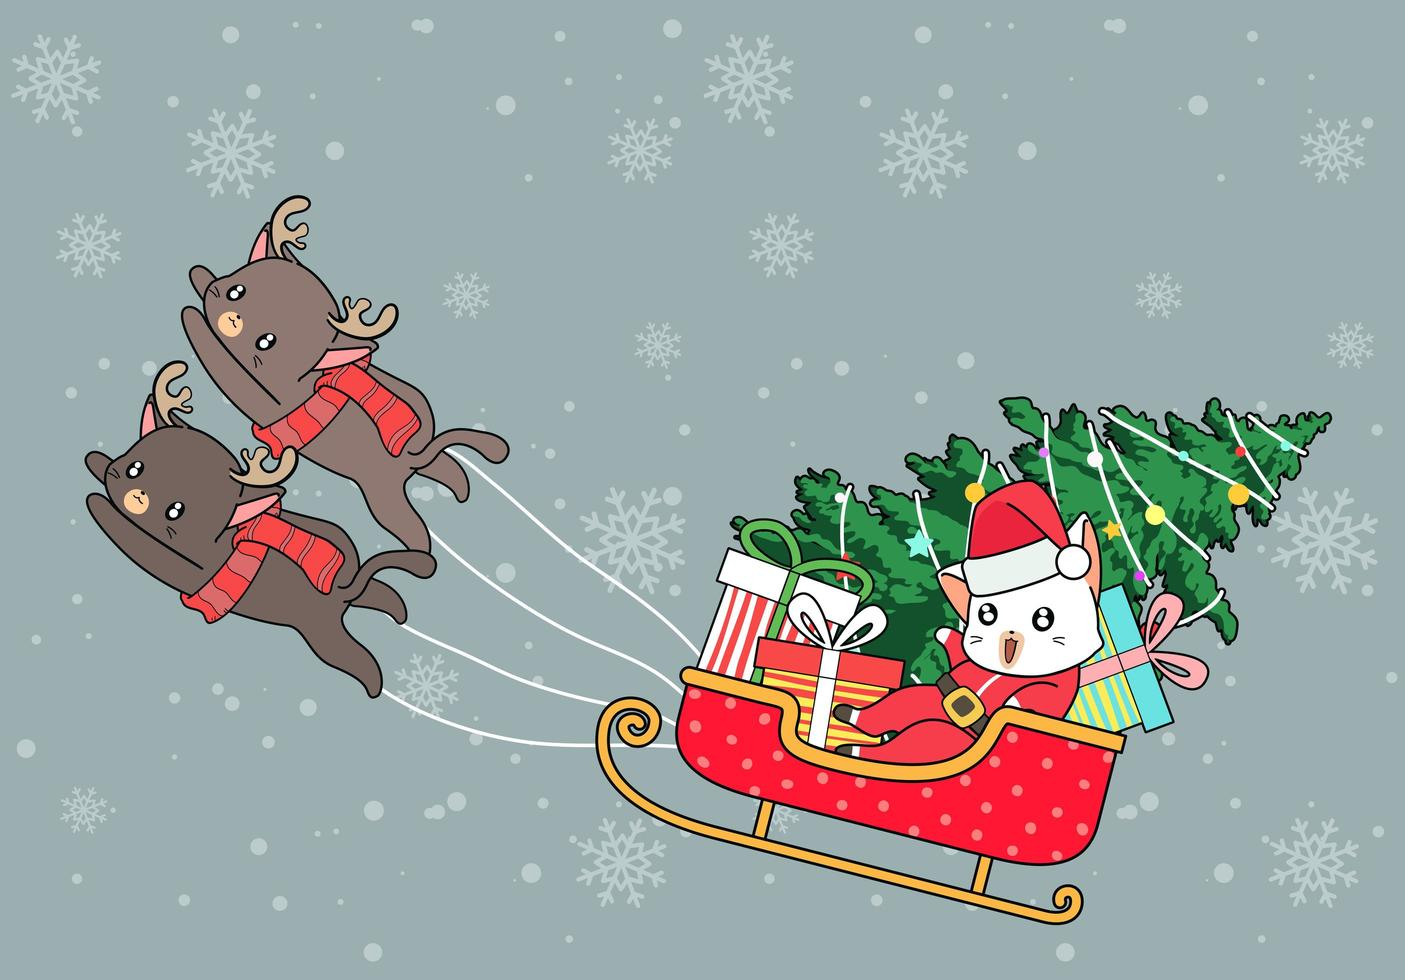 Santa Clause Cat in Sleigh Pulled by Reindeer Cats vector